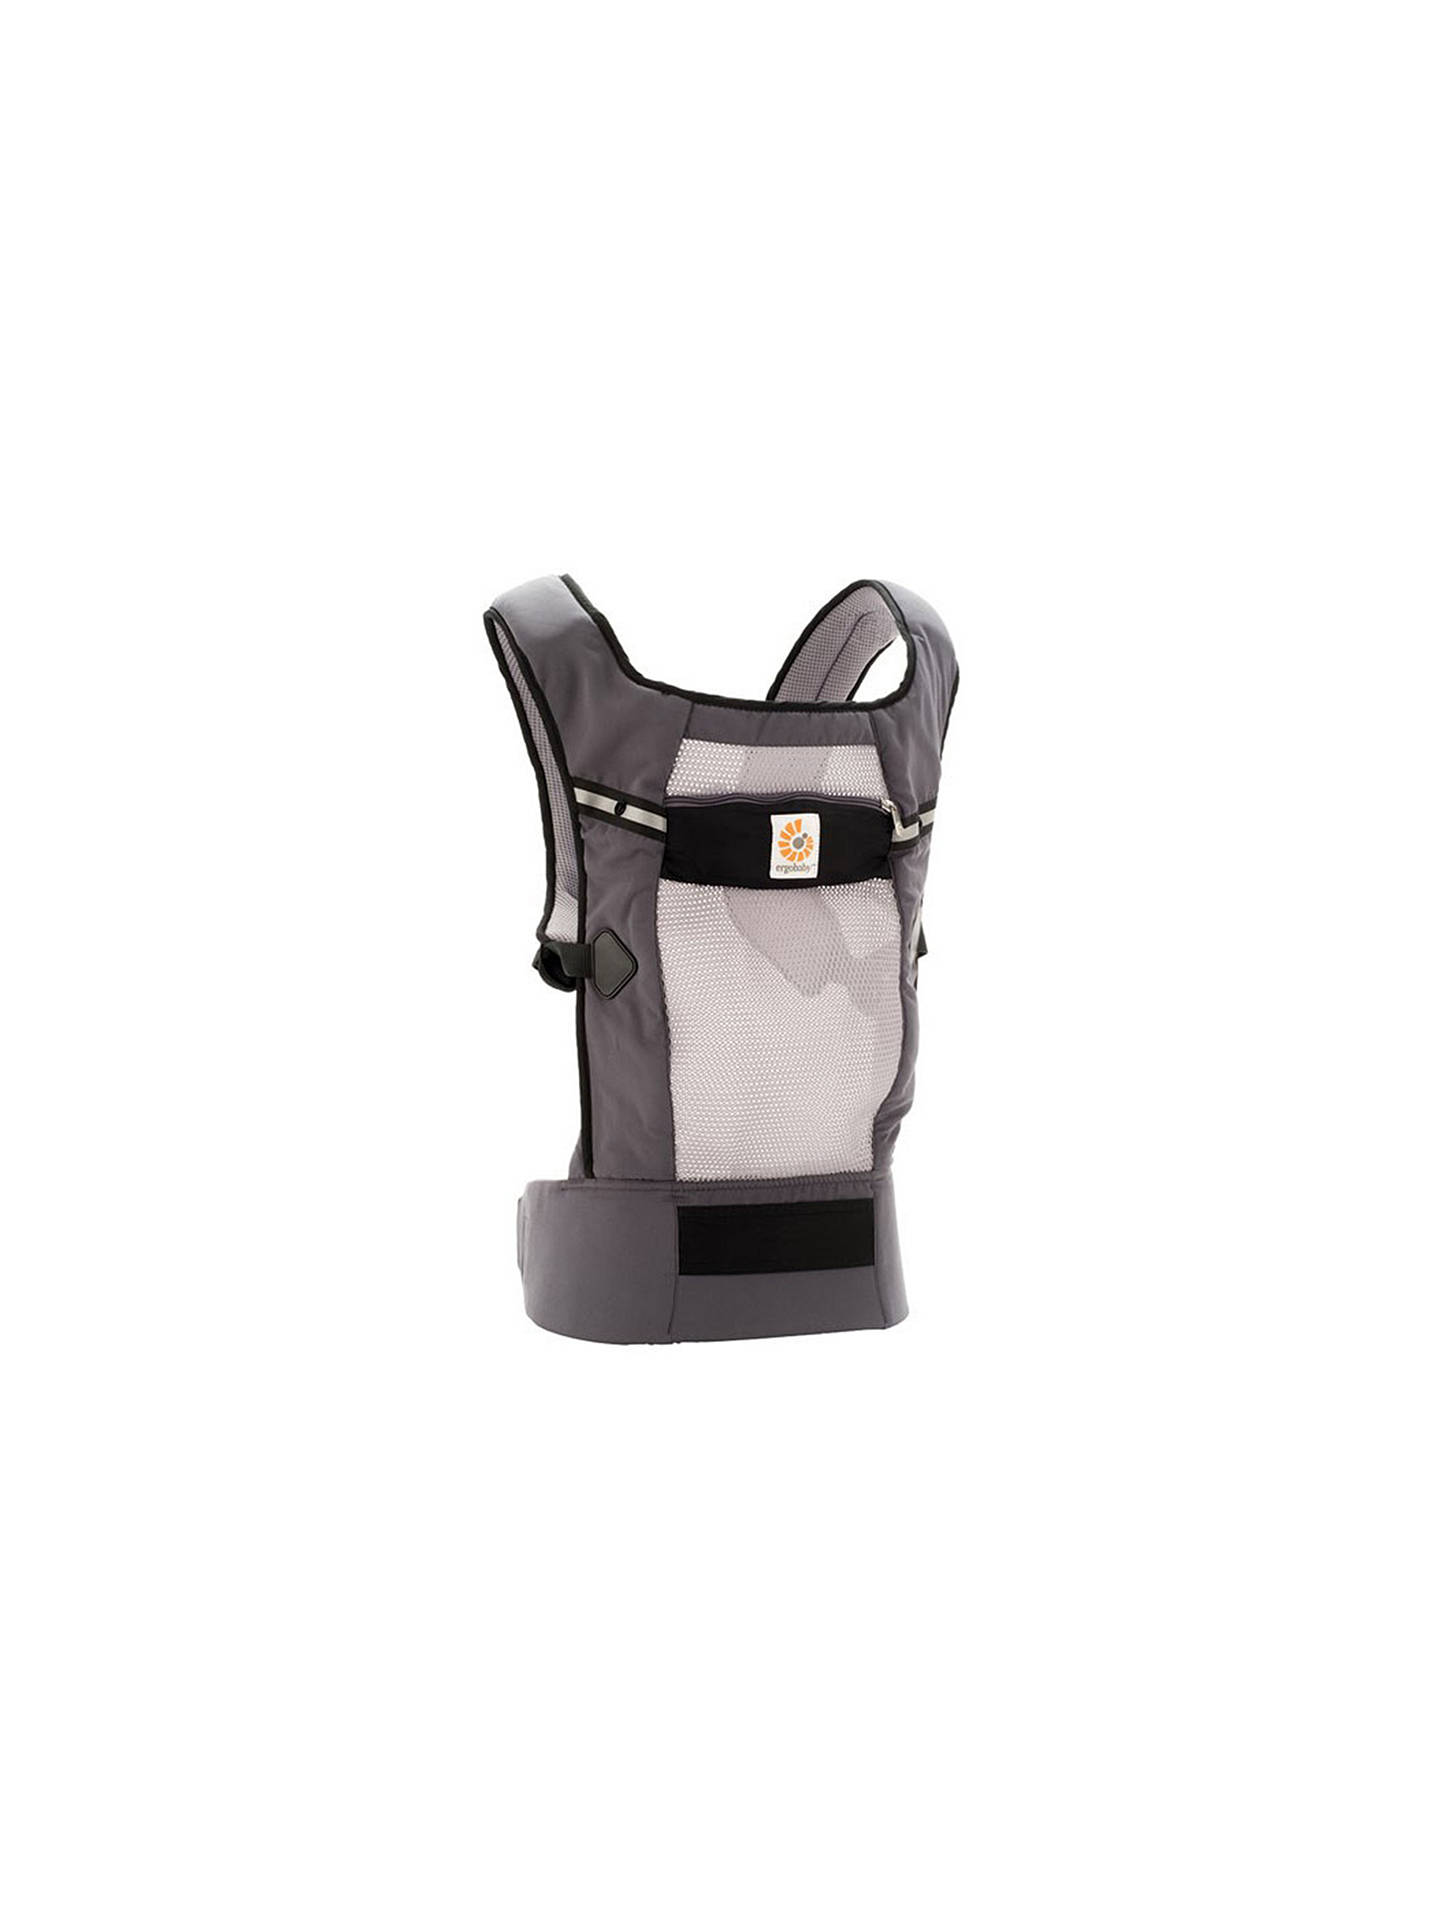 Ergobaby Performance Ventus Baby Carrier Graphite At John Lewis